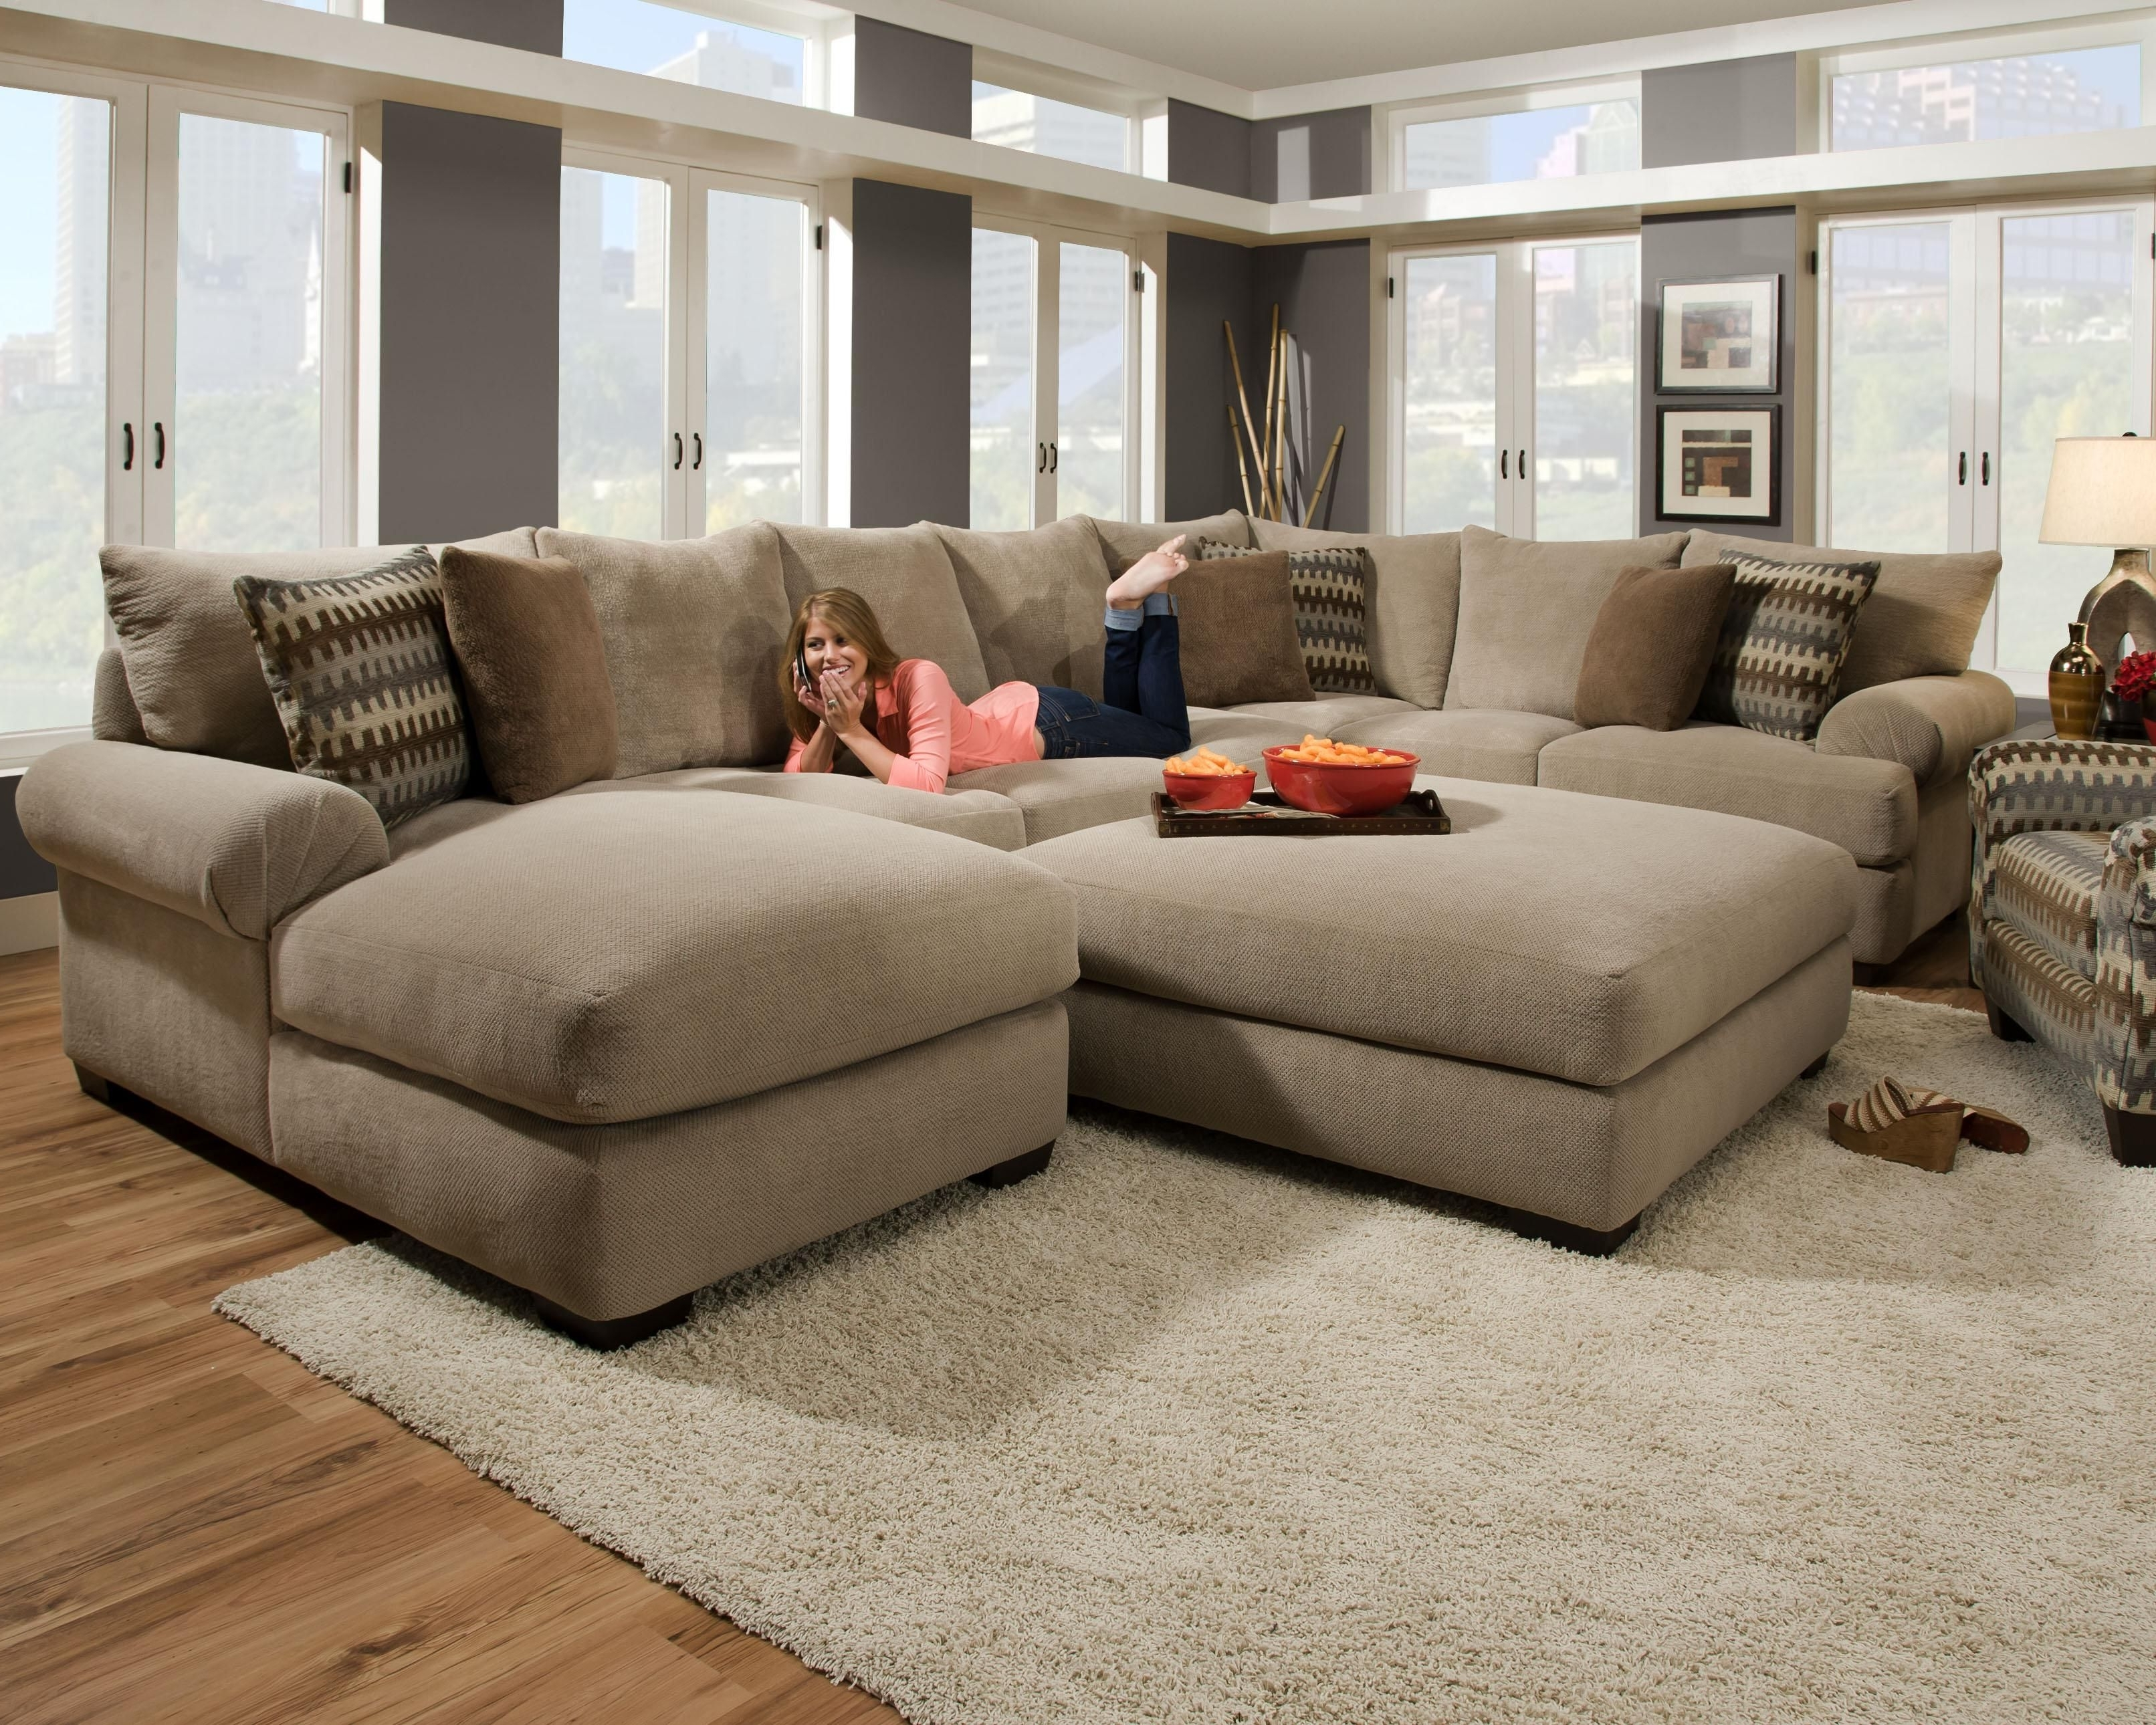 Big U Shaped Couches Inside Well Known Furniture Design Idea For Living Room And Oversized U Shaped (View 4 of 20)